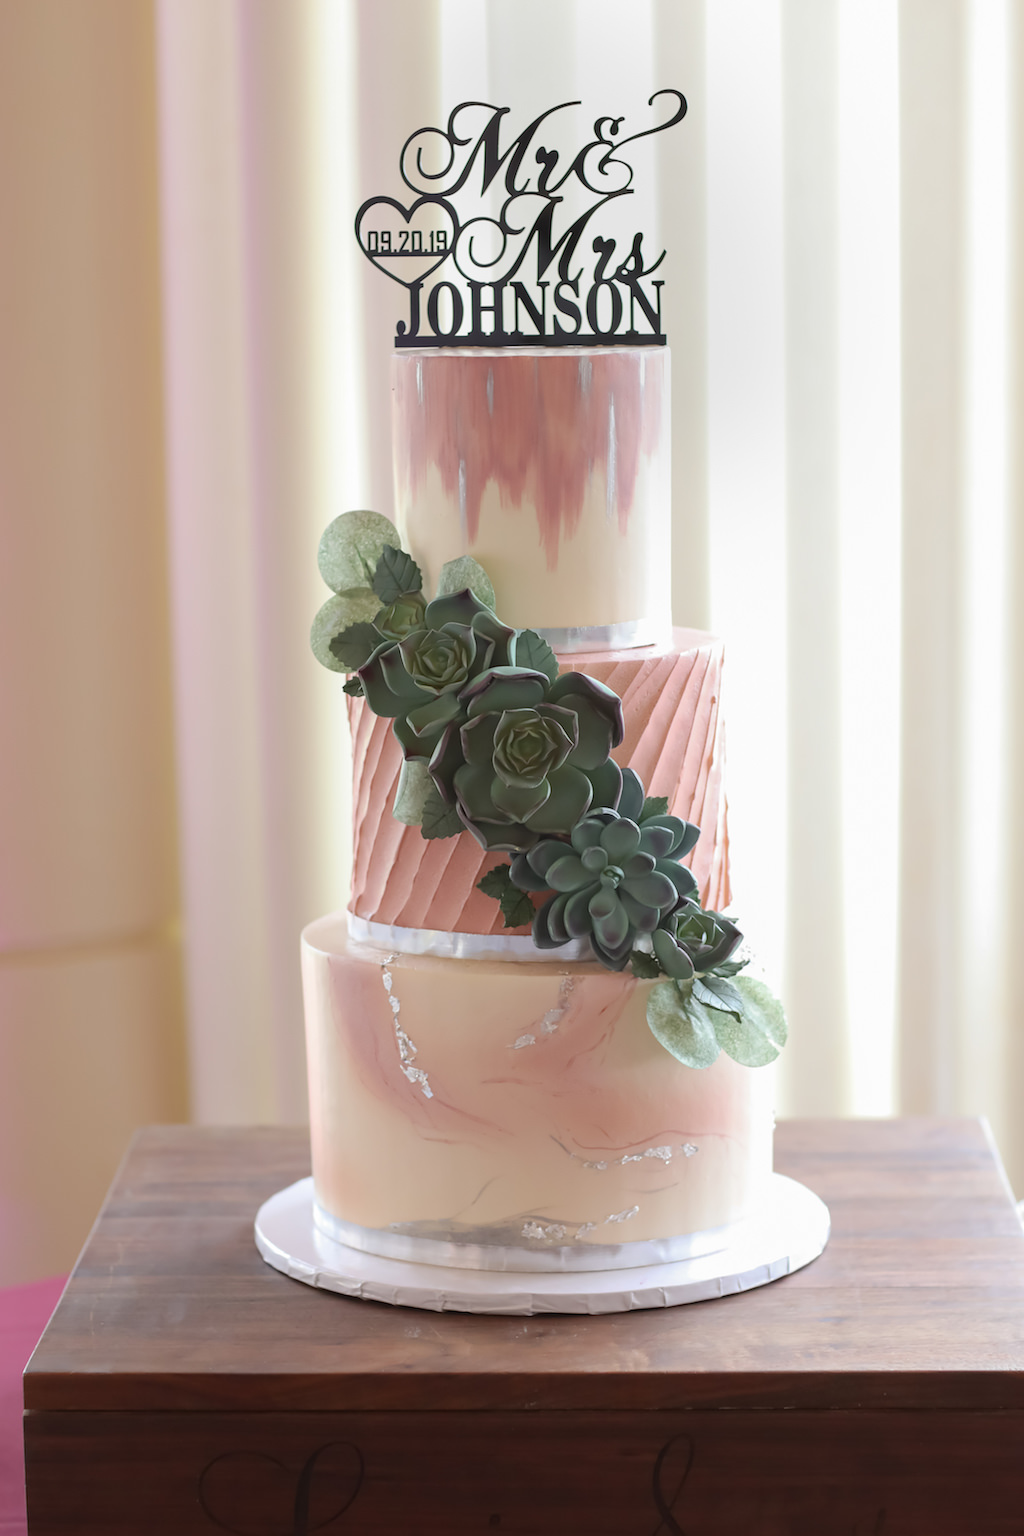 Three-Tiered Round Marble and Magenta Hand Painted Wedding Cake with Succulent Accent and Laser Cut Custom Wedding Cake Topper | Tampa Bay Wedding Bakery The Artistic Whisk | Tampa Wedding Photographer Lifelong Photography Studio